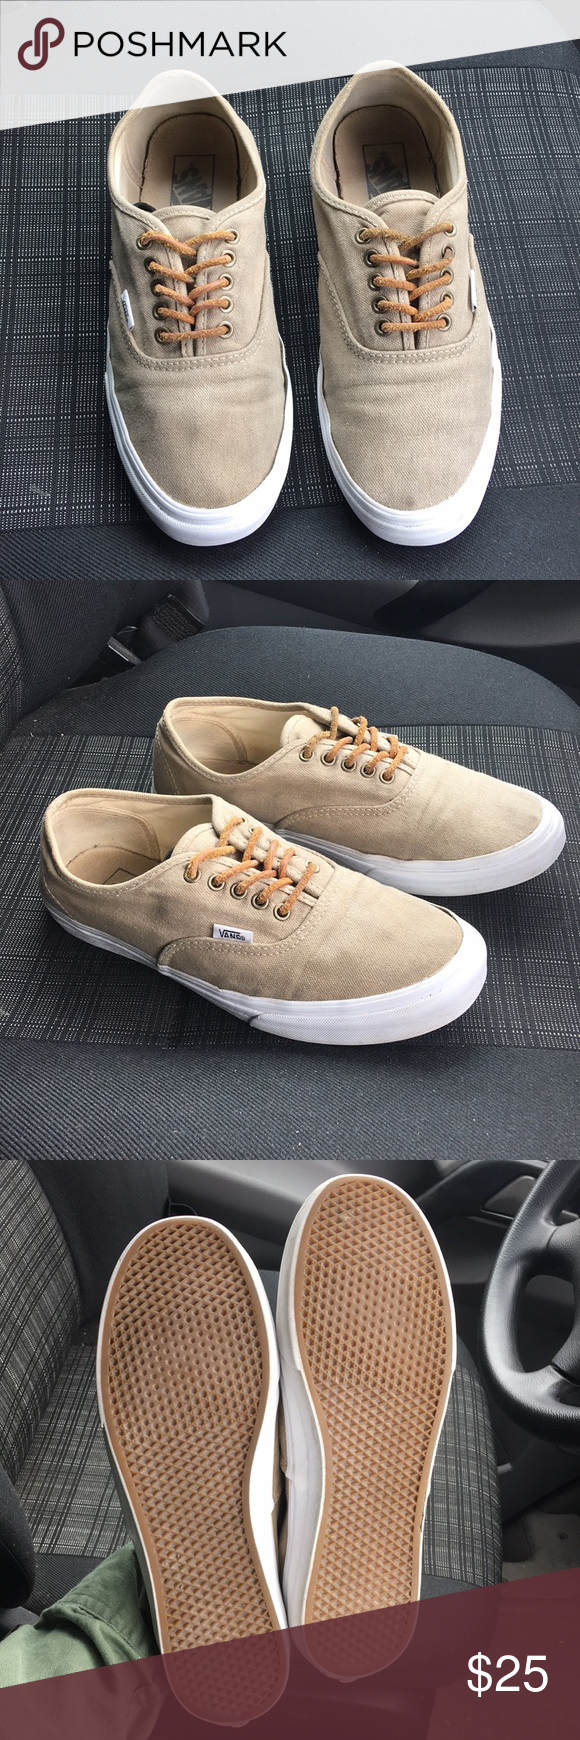 Vans canvas with leather laces | White